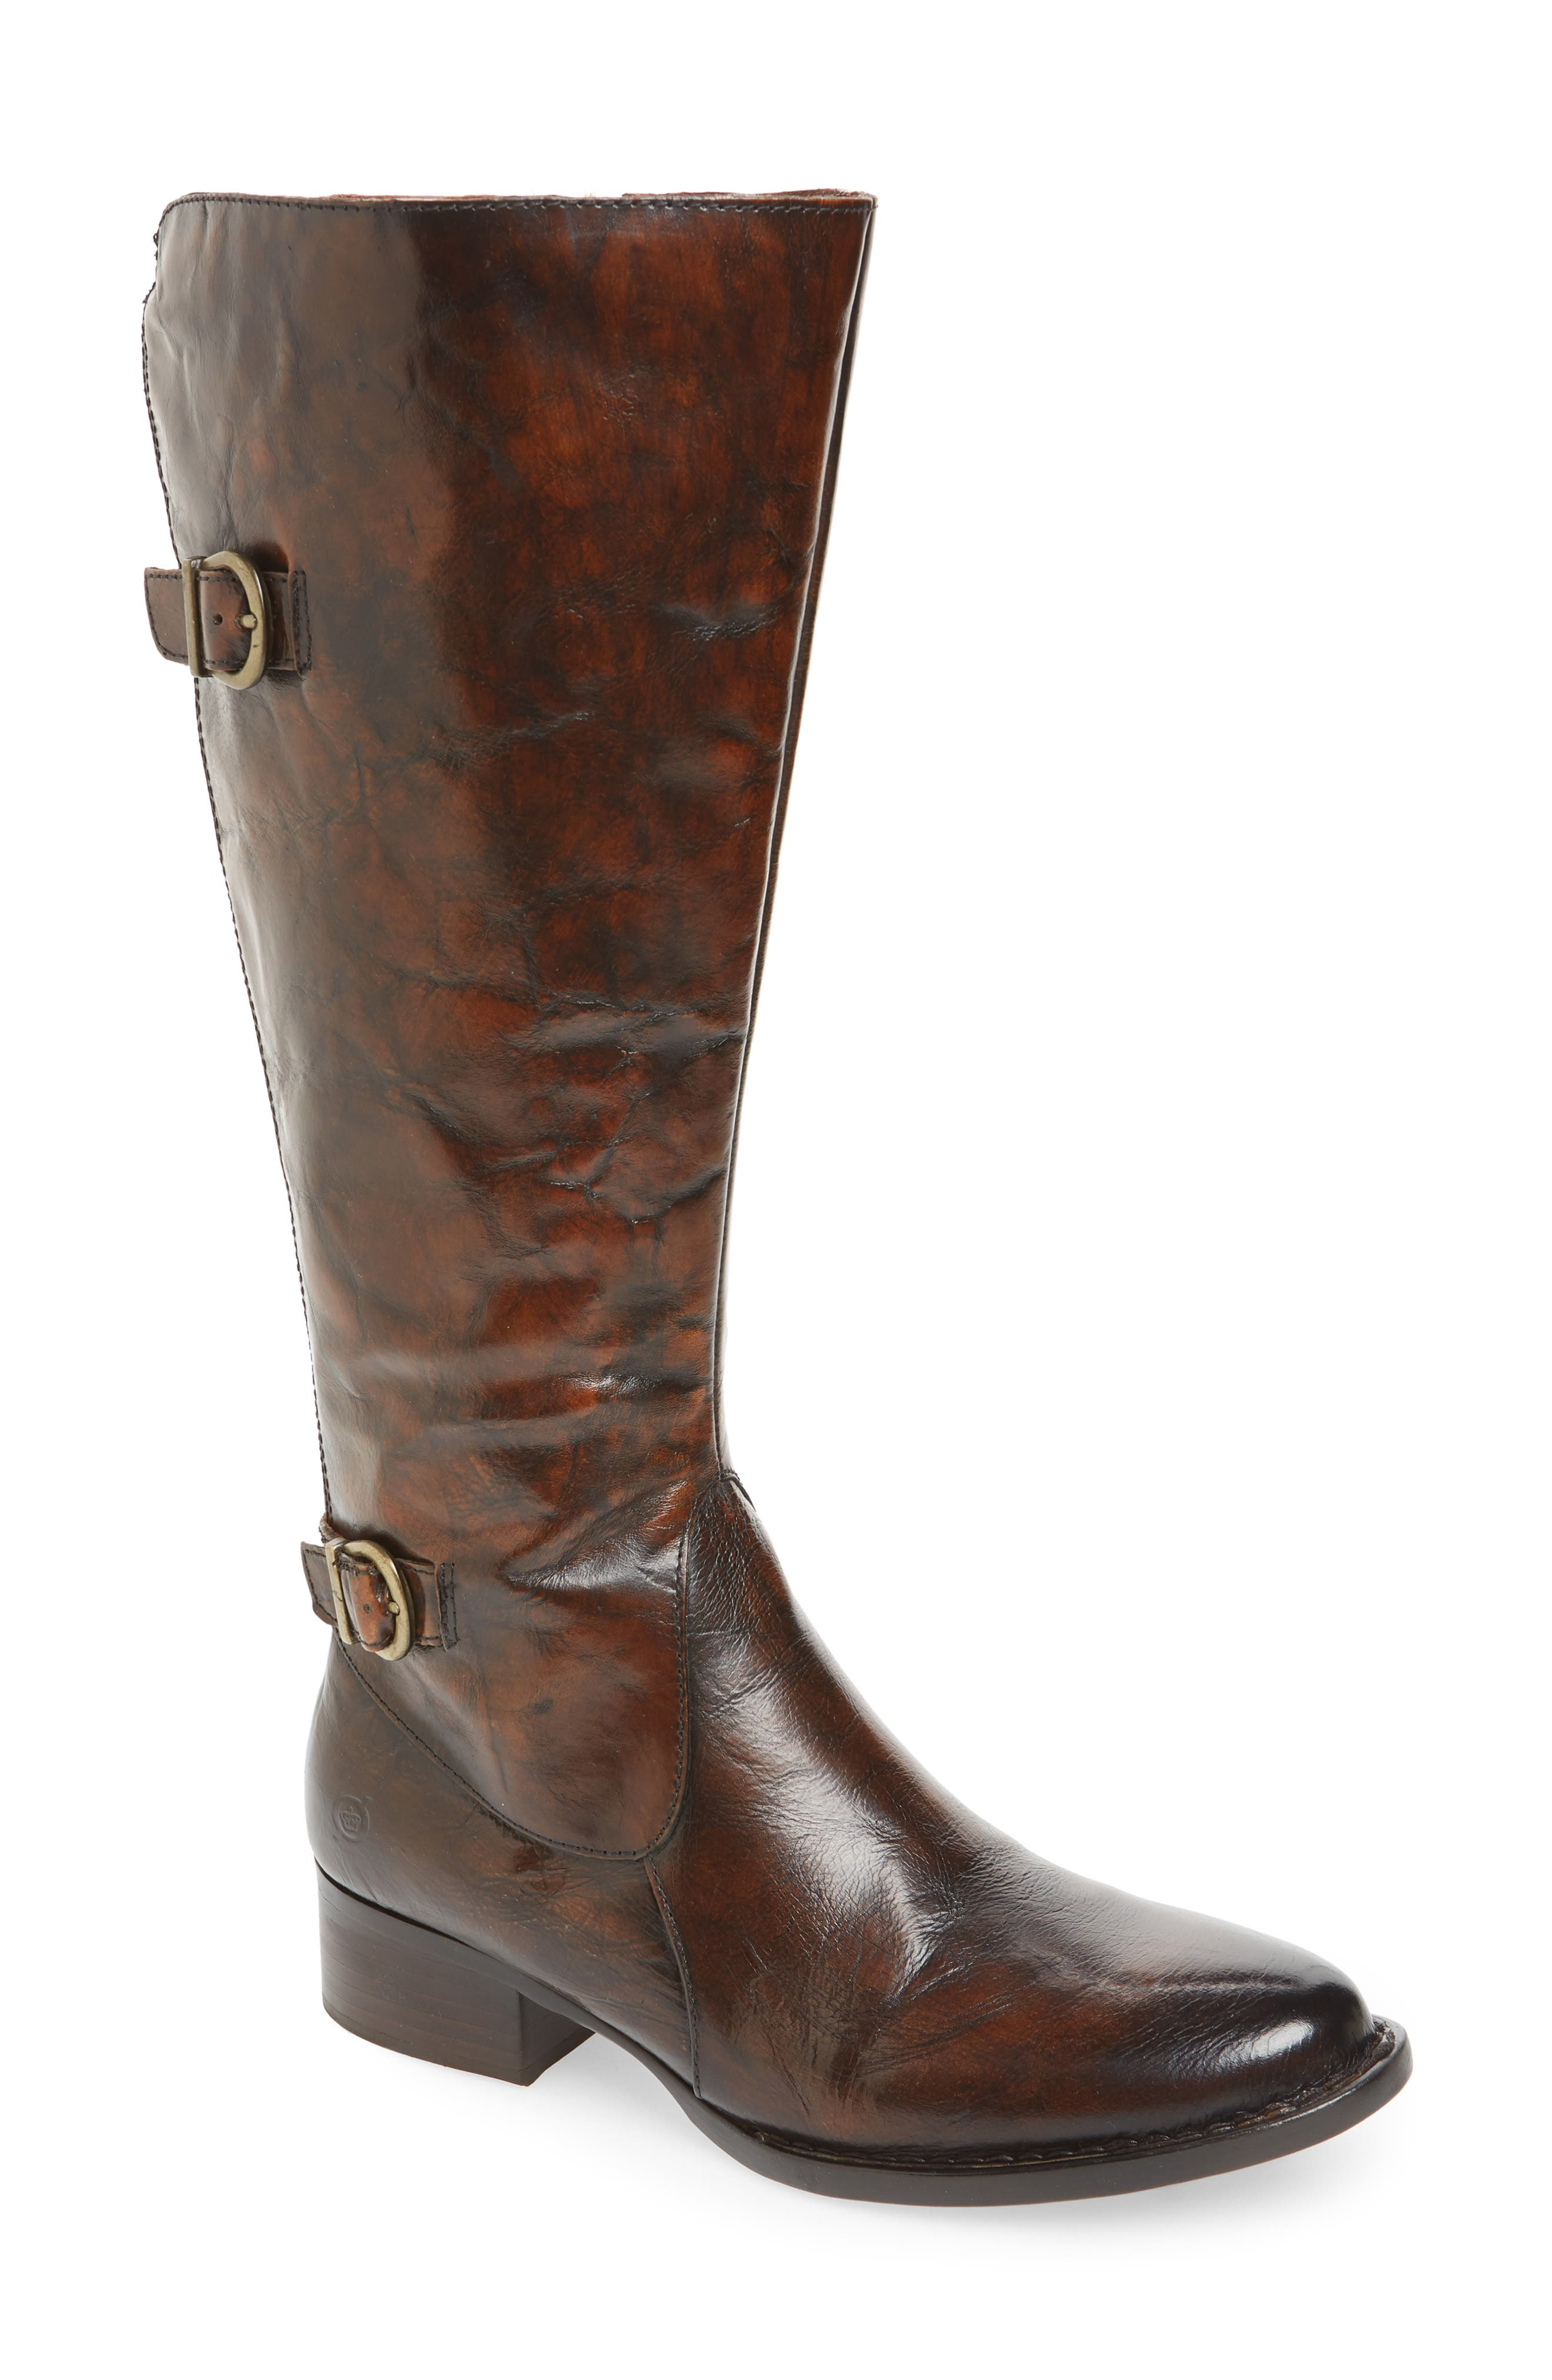 B?rn Gibb Knee High Riding Boot, Wide Calf- Brown